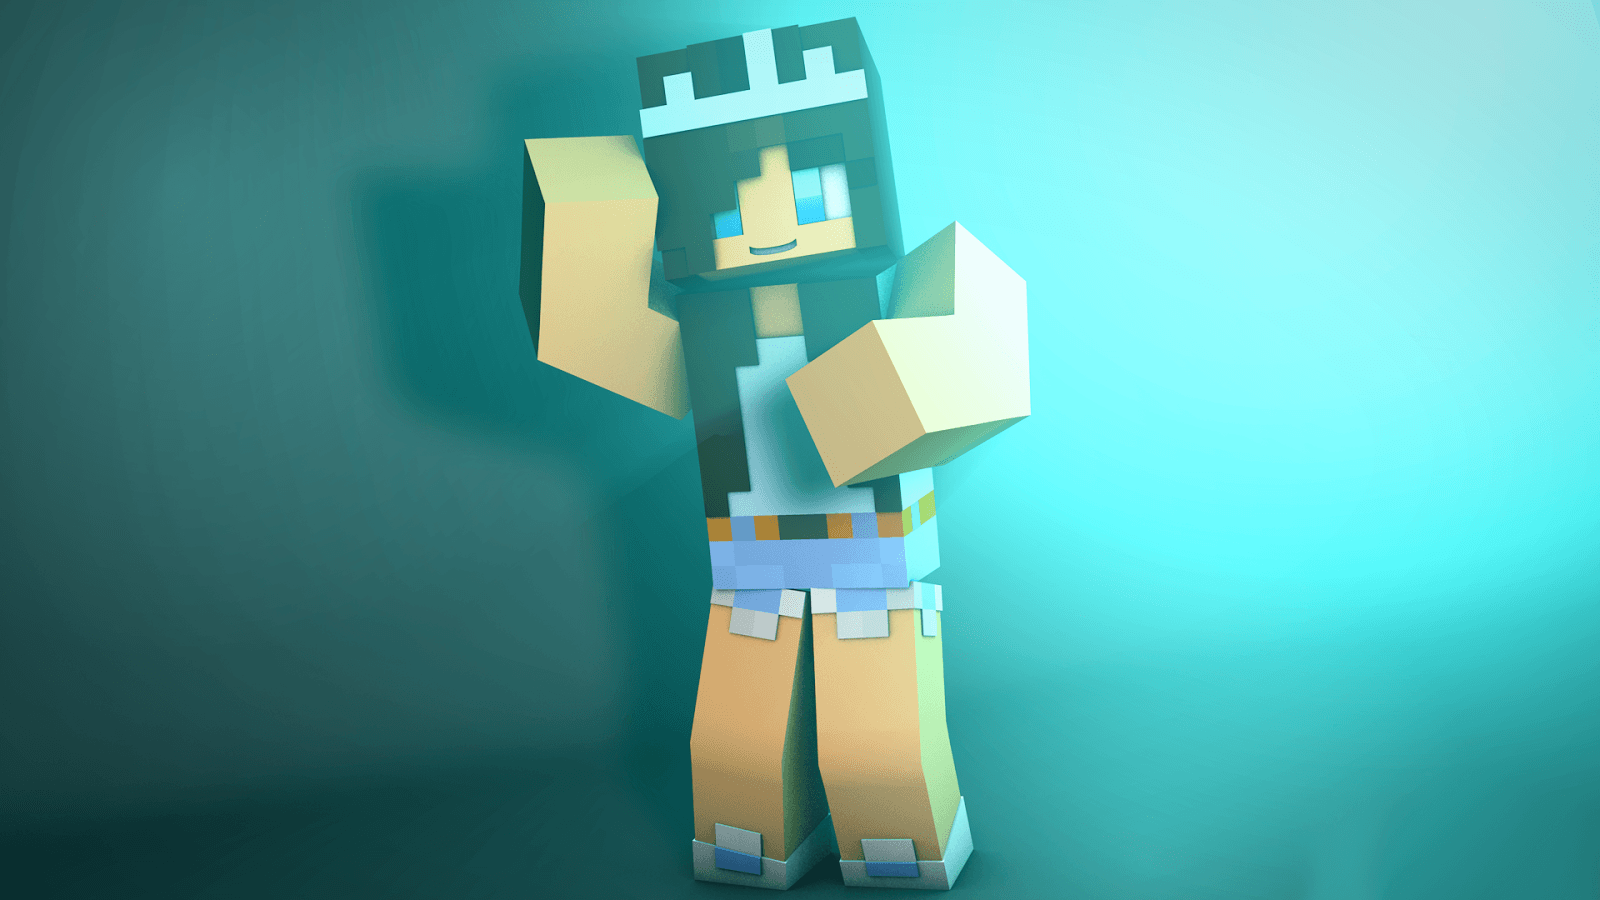 Minecraft Girl Skins Wallpapers - Top Free Minecraft Girl Skins